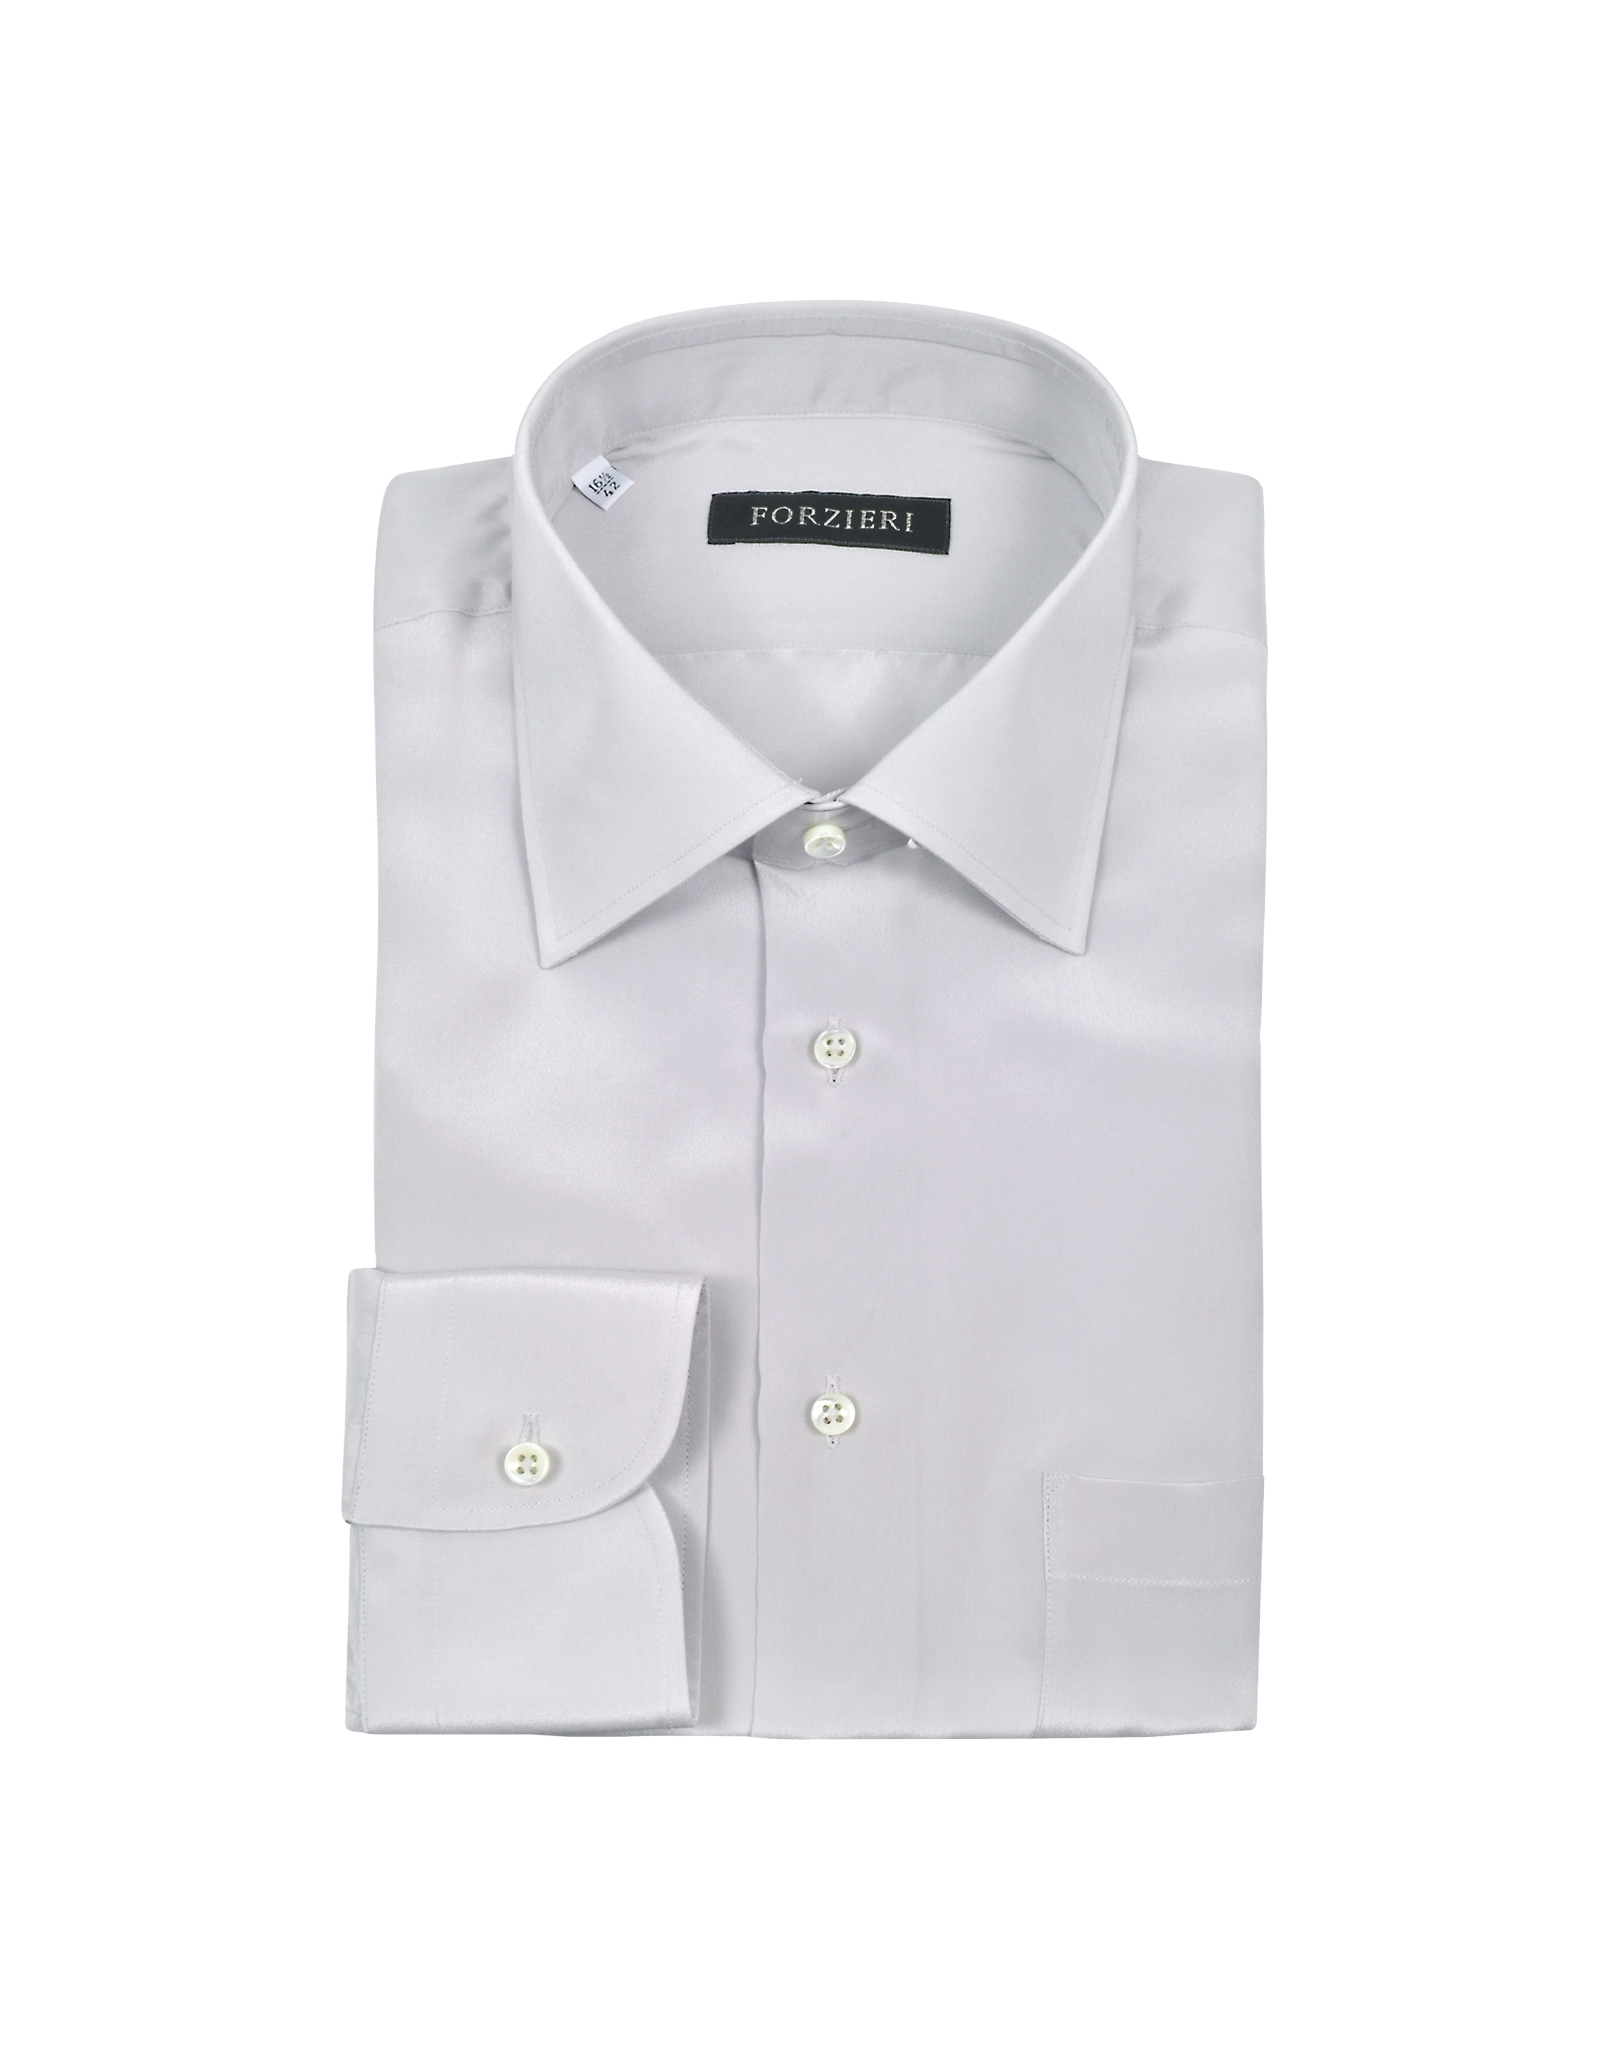 Lyst - Forzieri Silver Gray Pure Silk Dress Shirt in Gray ...